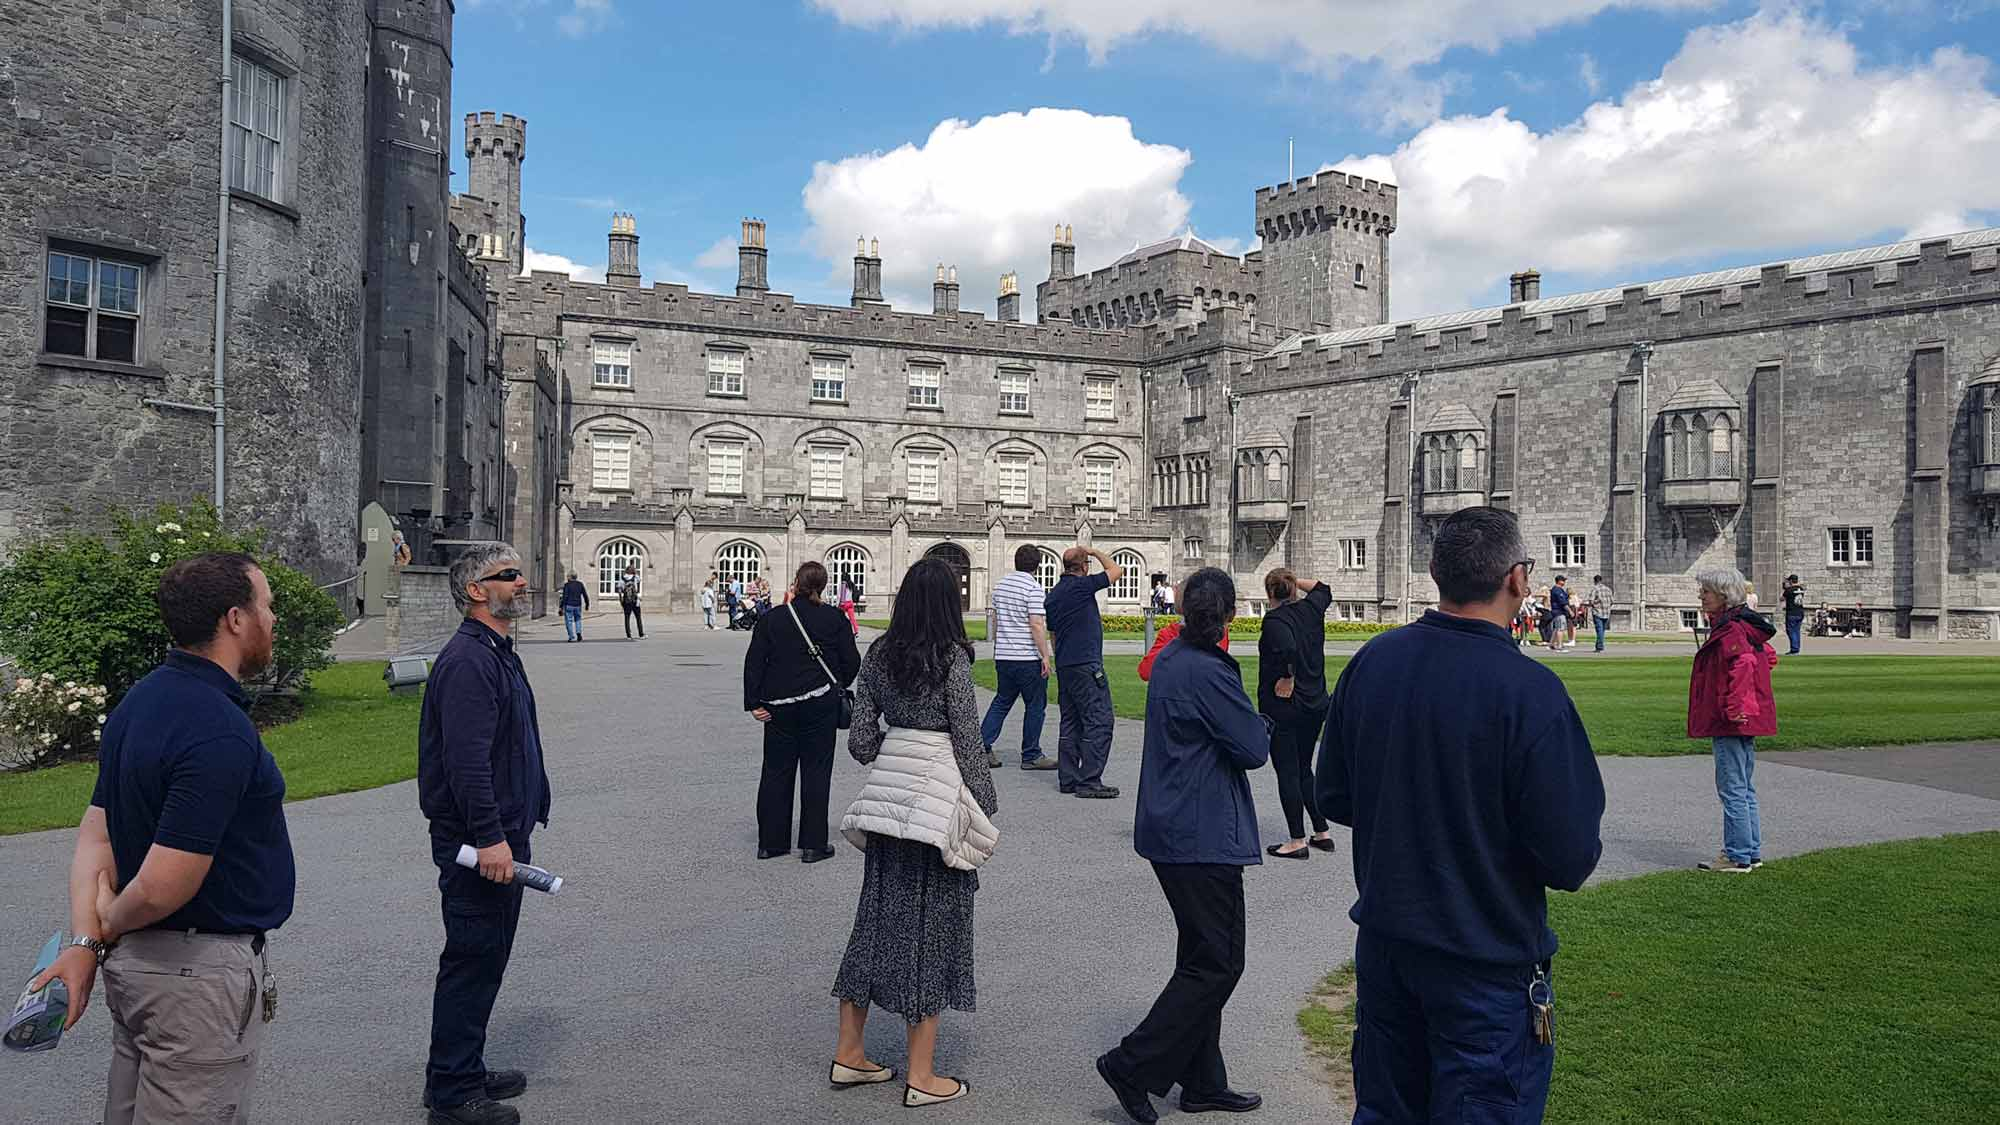 Surveying Swifts at Kilkenny Castle